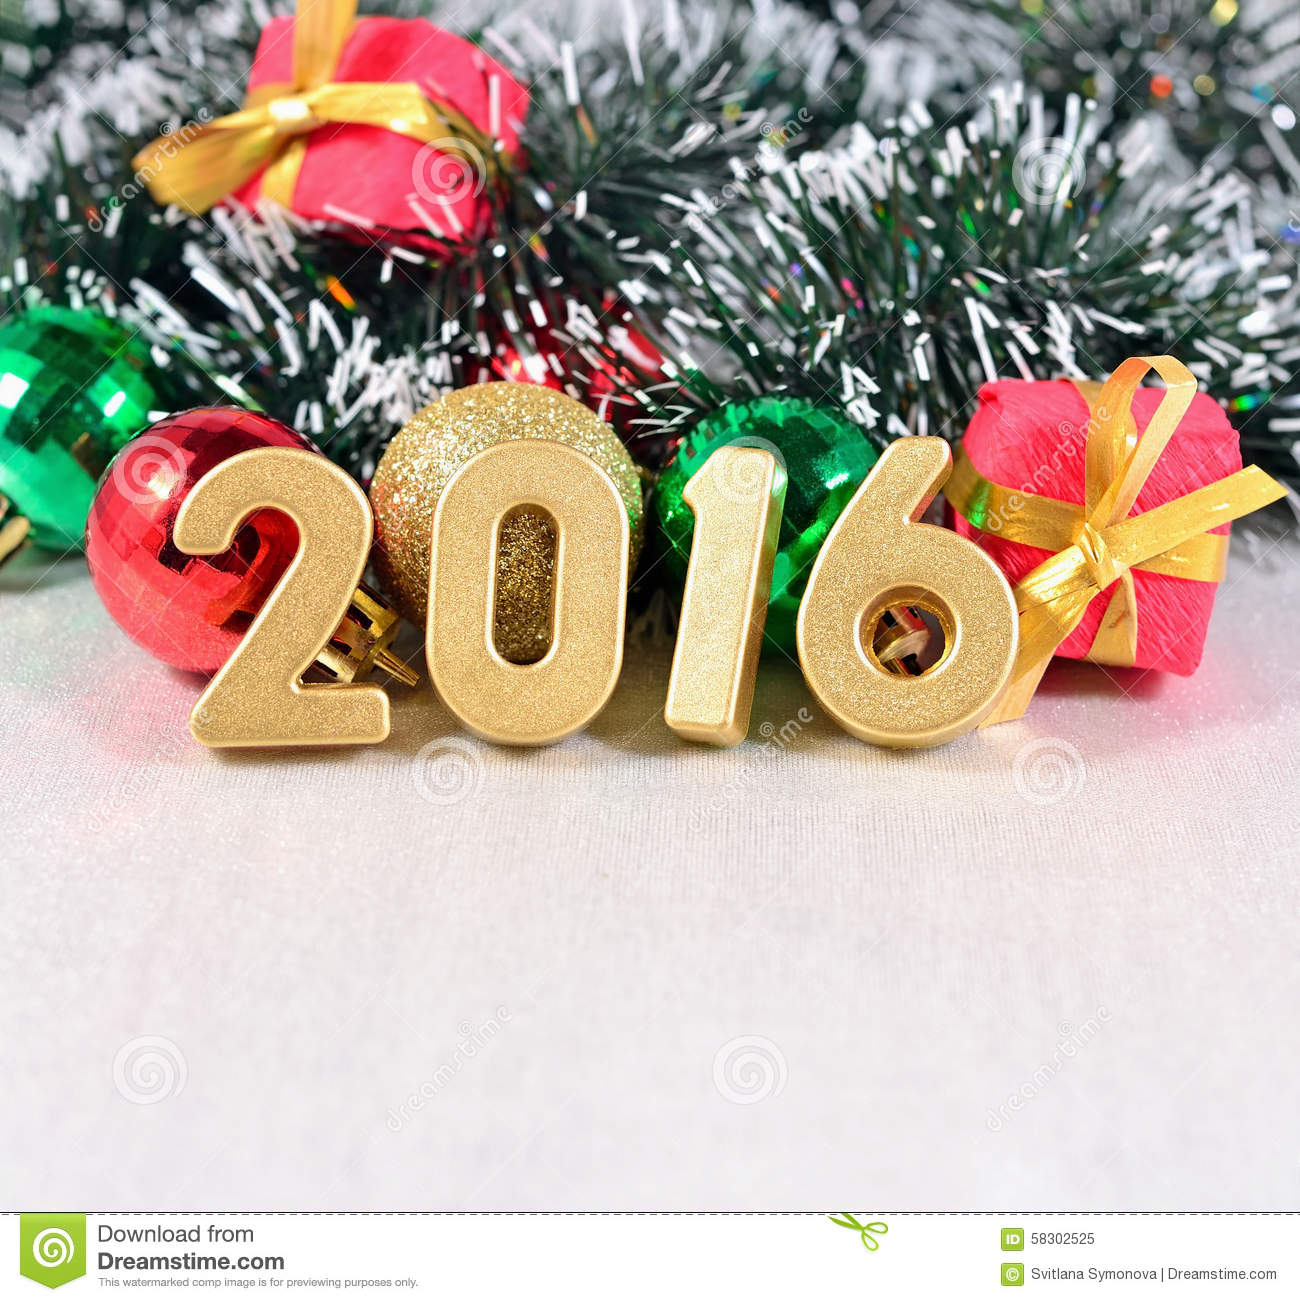 download 2016 year golden figures and christmas decorations stock image image of green 2016 - Christmas Decorations 2016